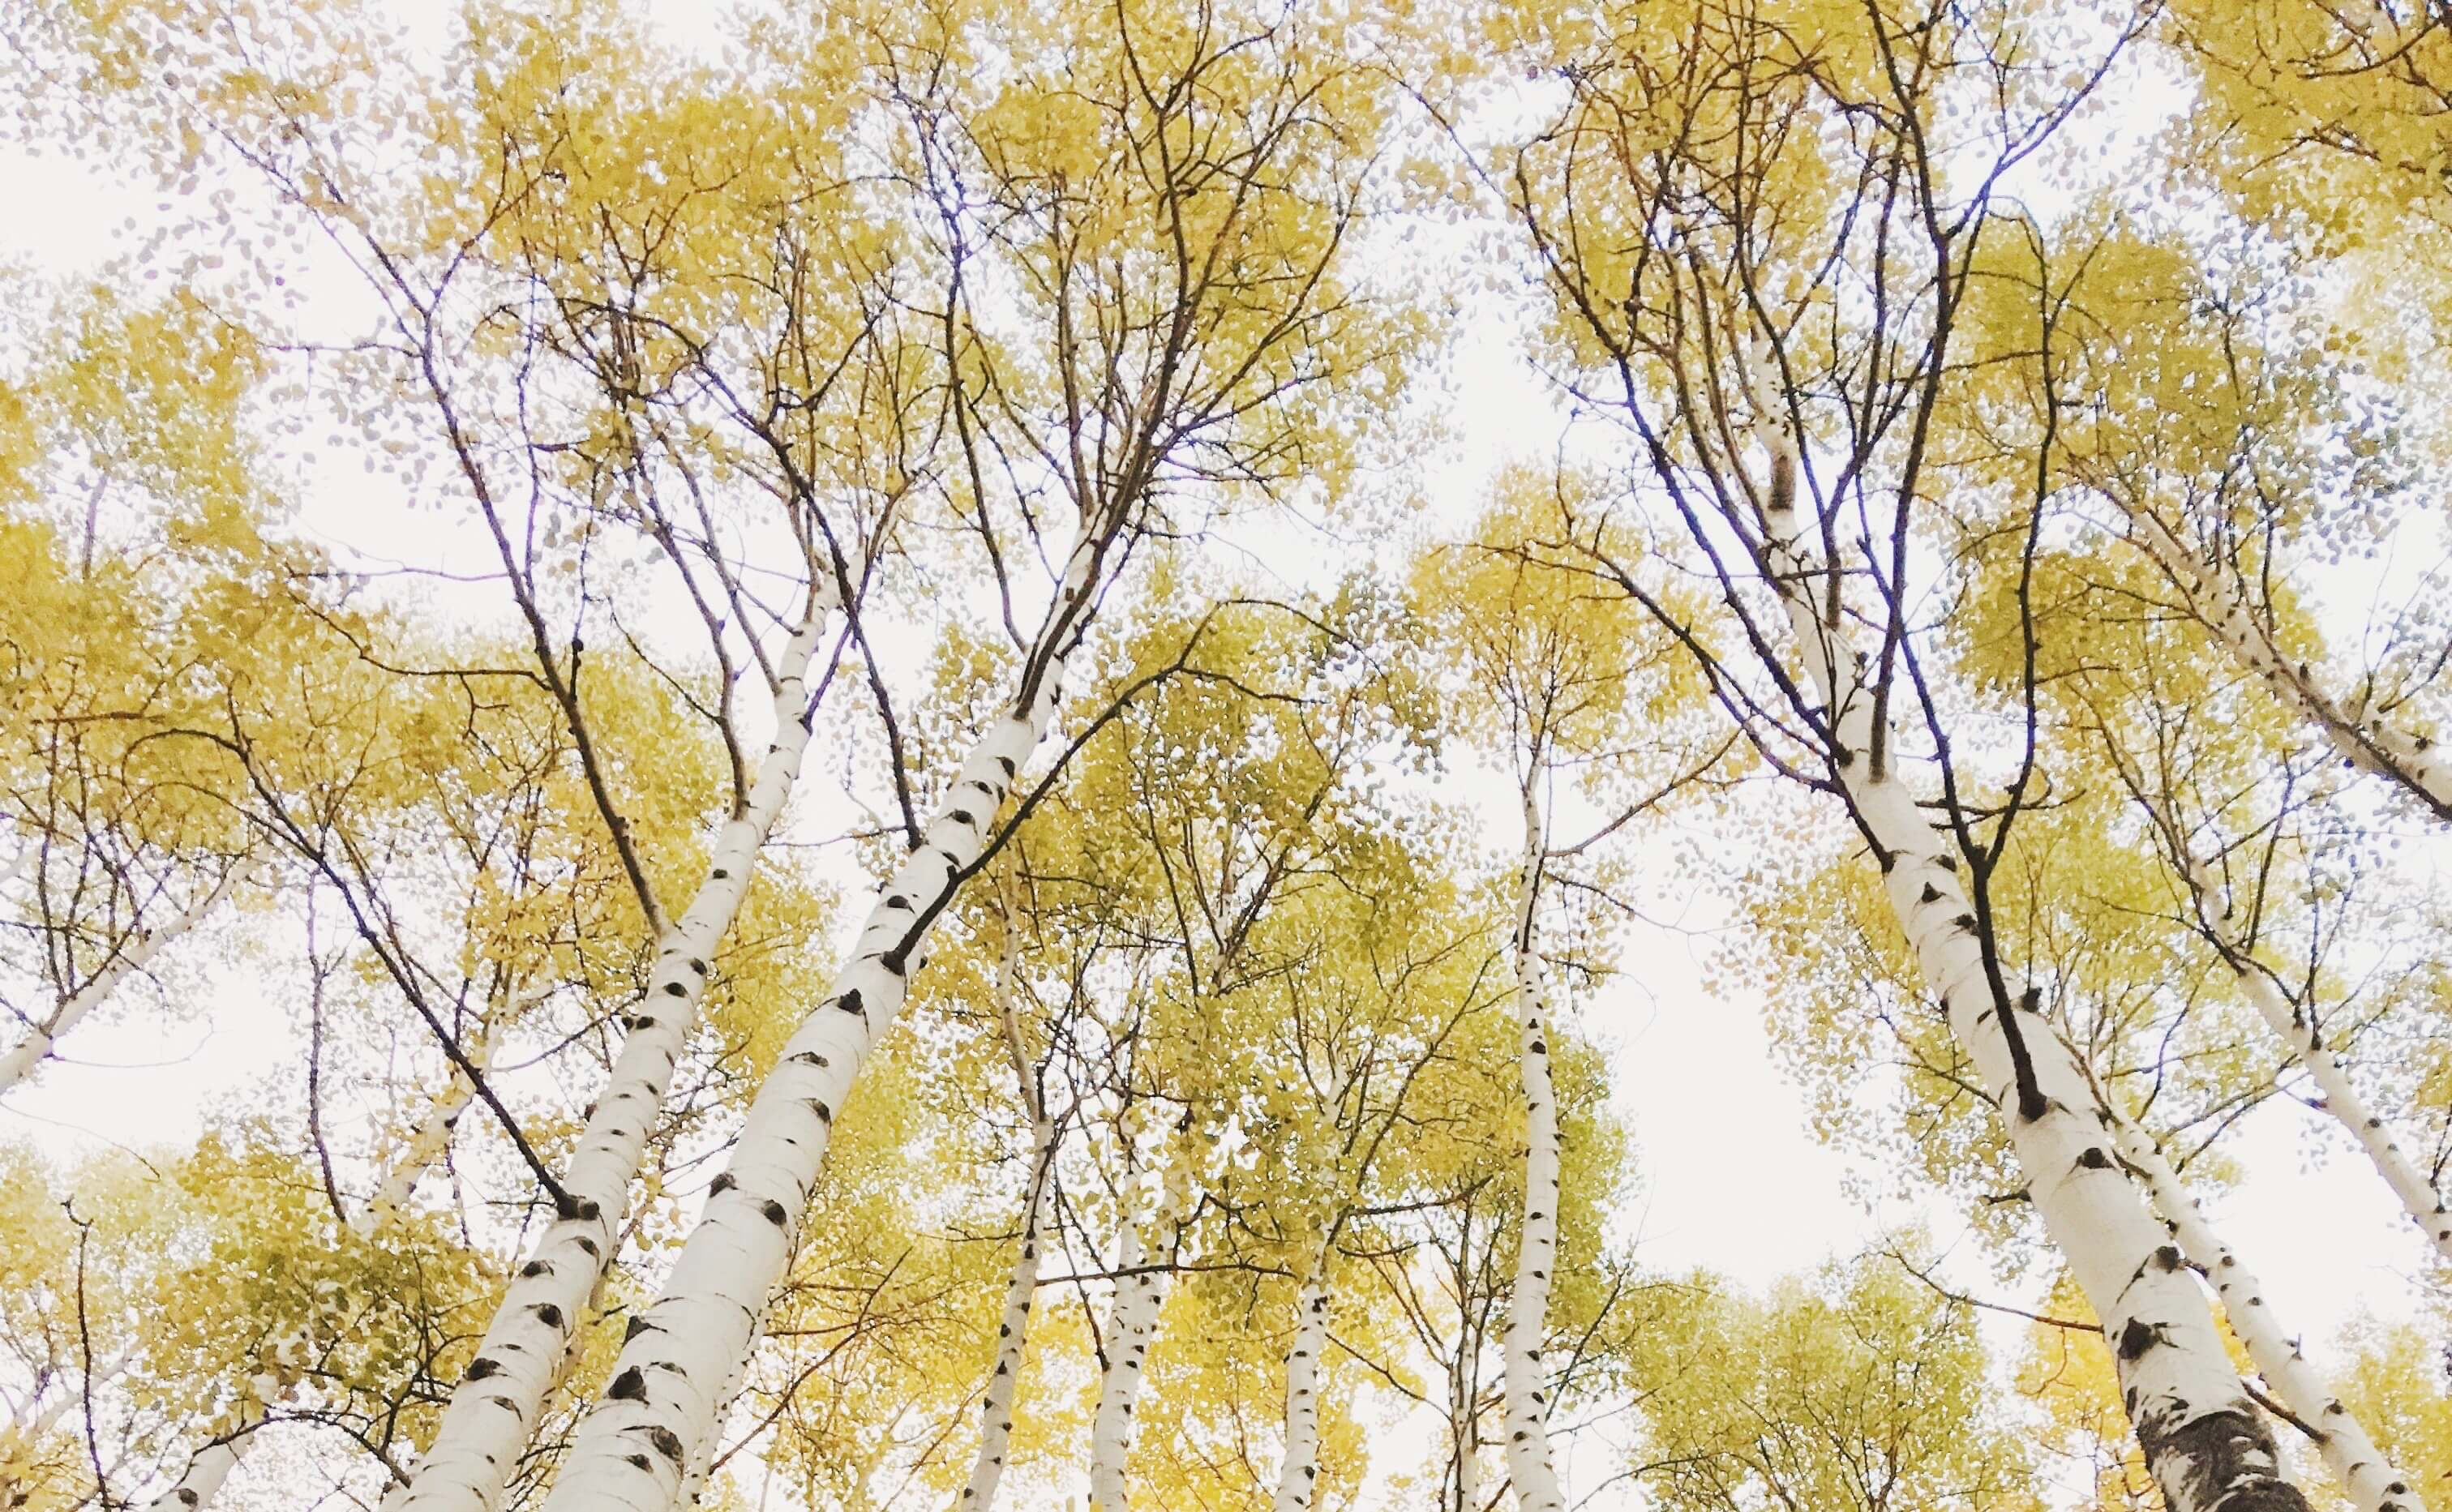 Photo of golden leaves on Aspen trees doctored using tips for editing phone photos